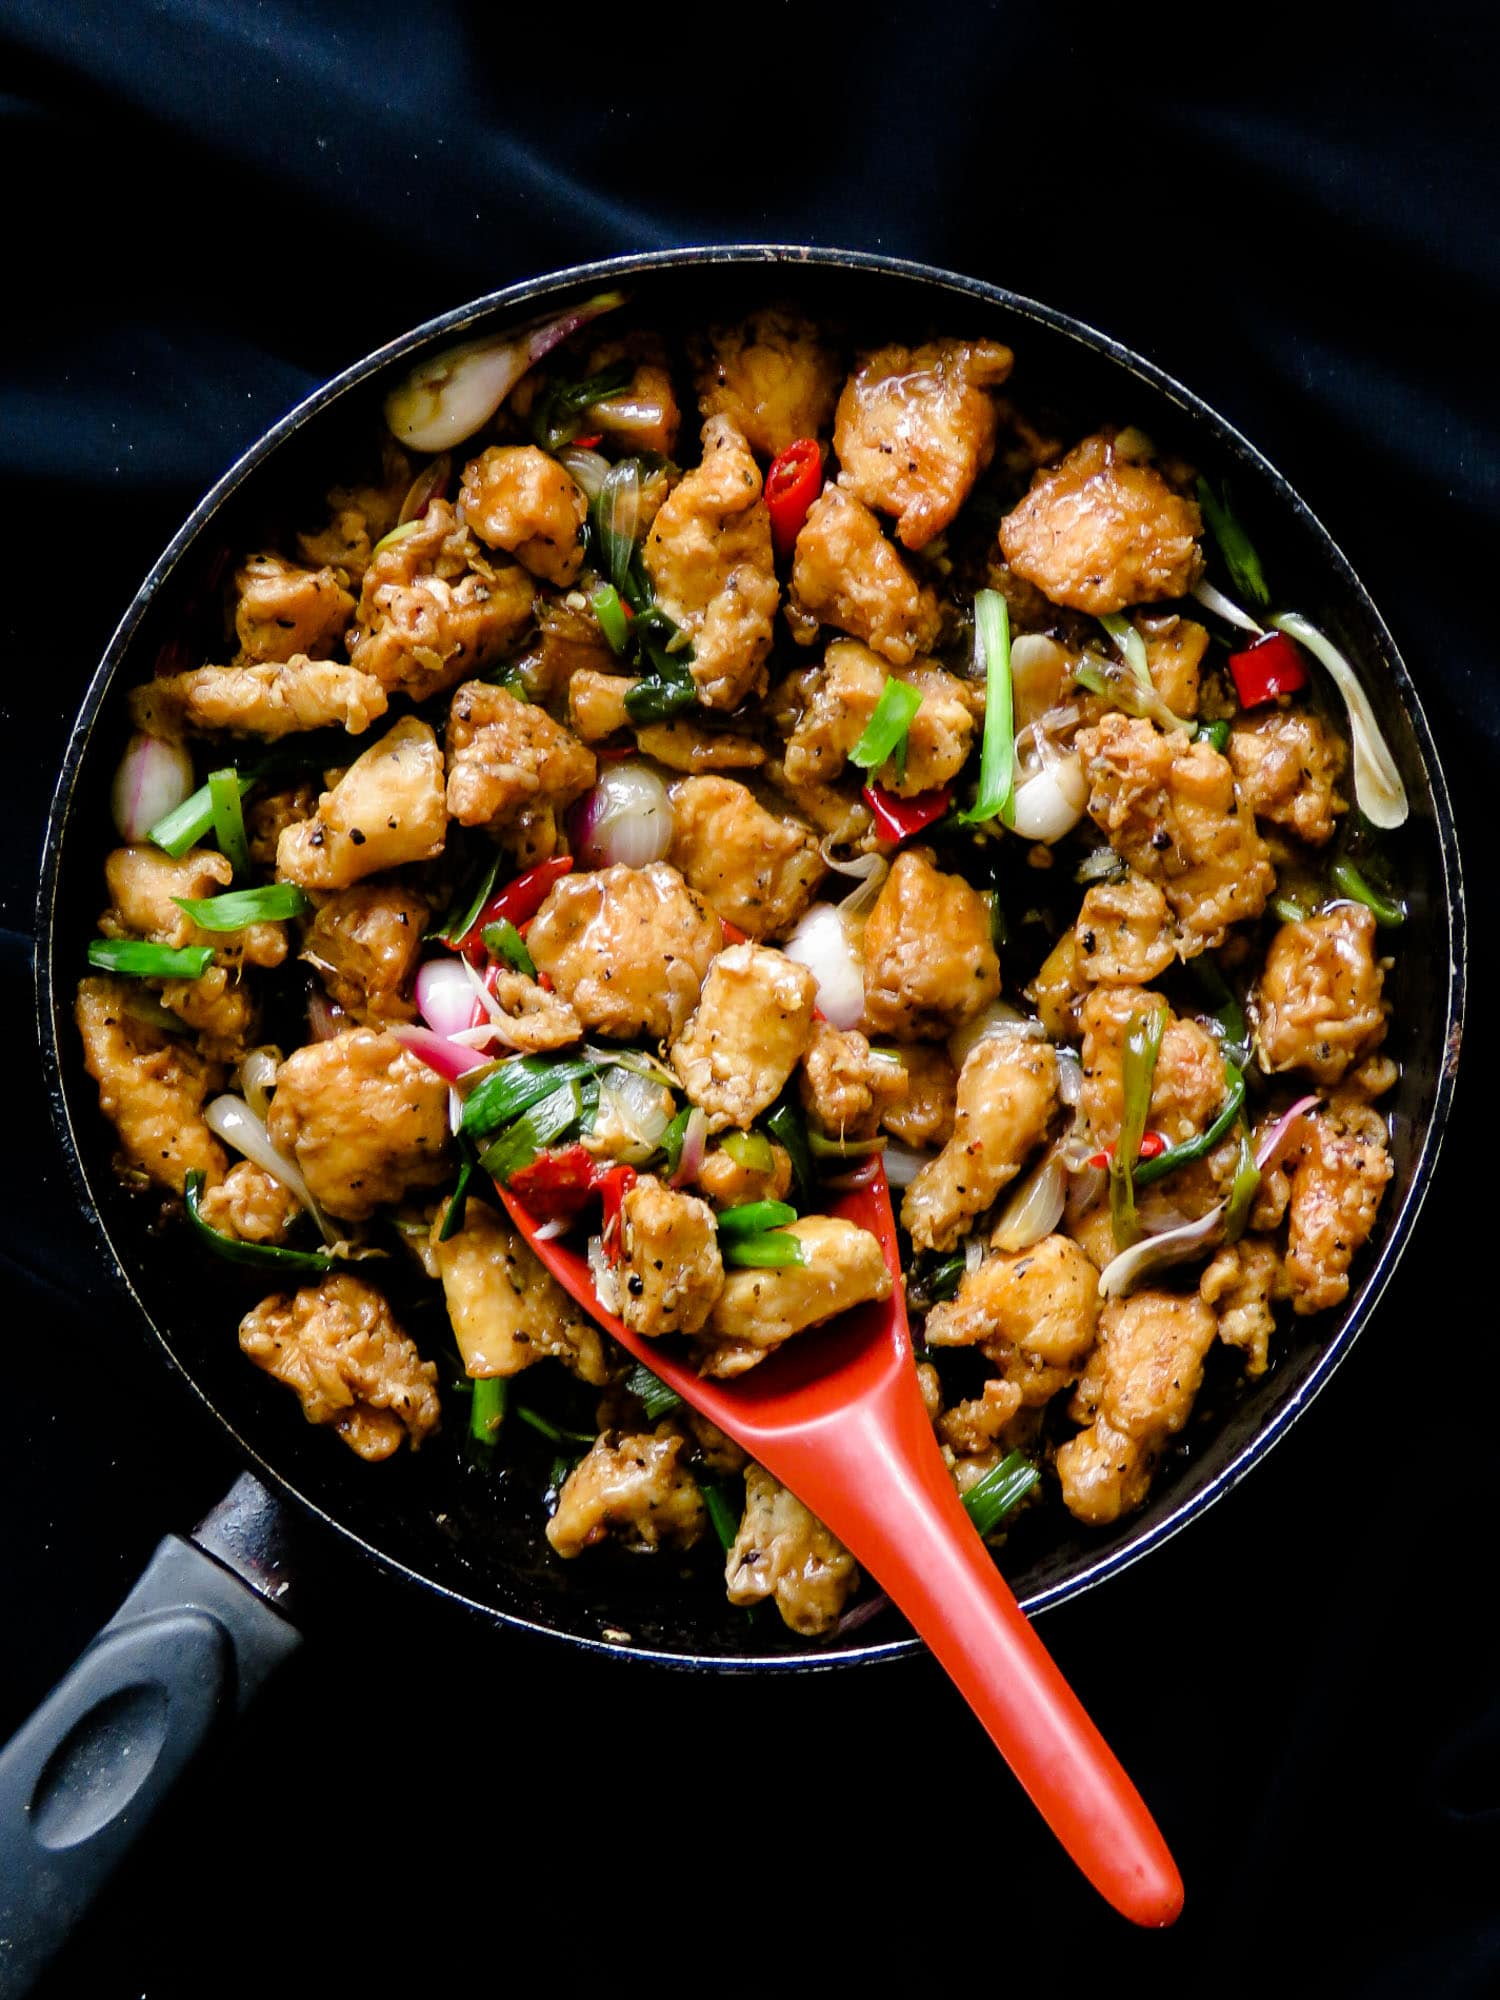 Chinese chicken Manchurian-do something different for your weekend dinner, make a large pan of this delicious (restaurant-style), chicken Manchurian, there's no need to make multiple dishes, just a bowl of rice or noodles is all you need for an easy meal for the family-islandsmile.org